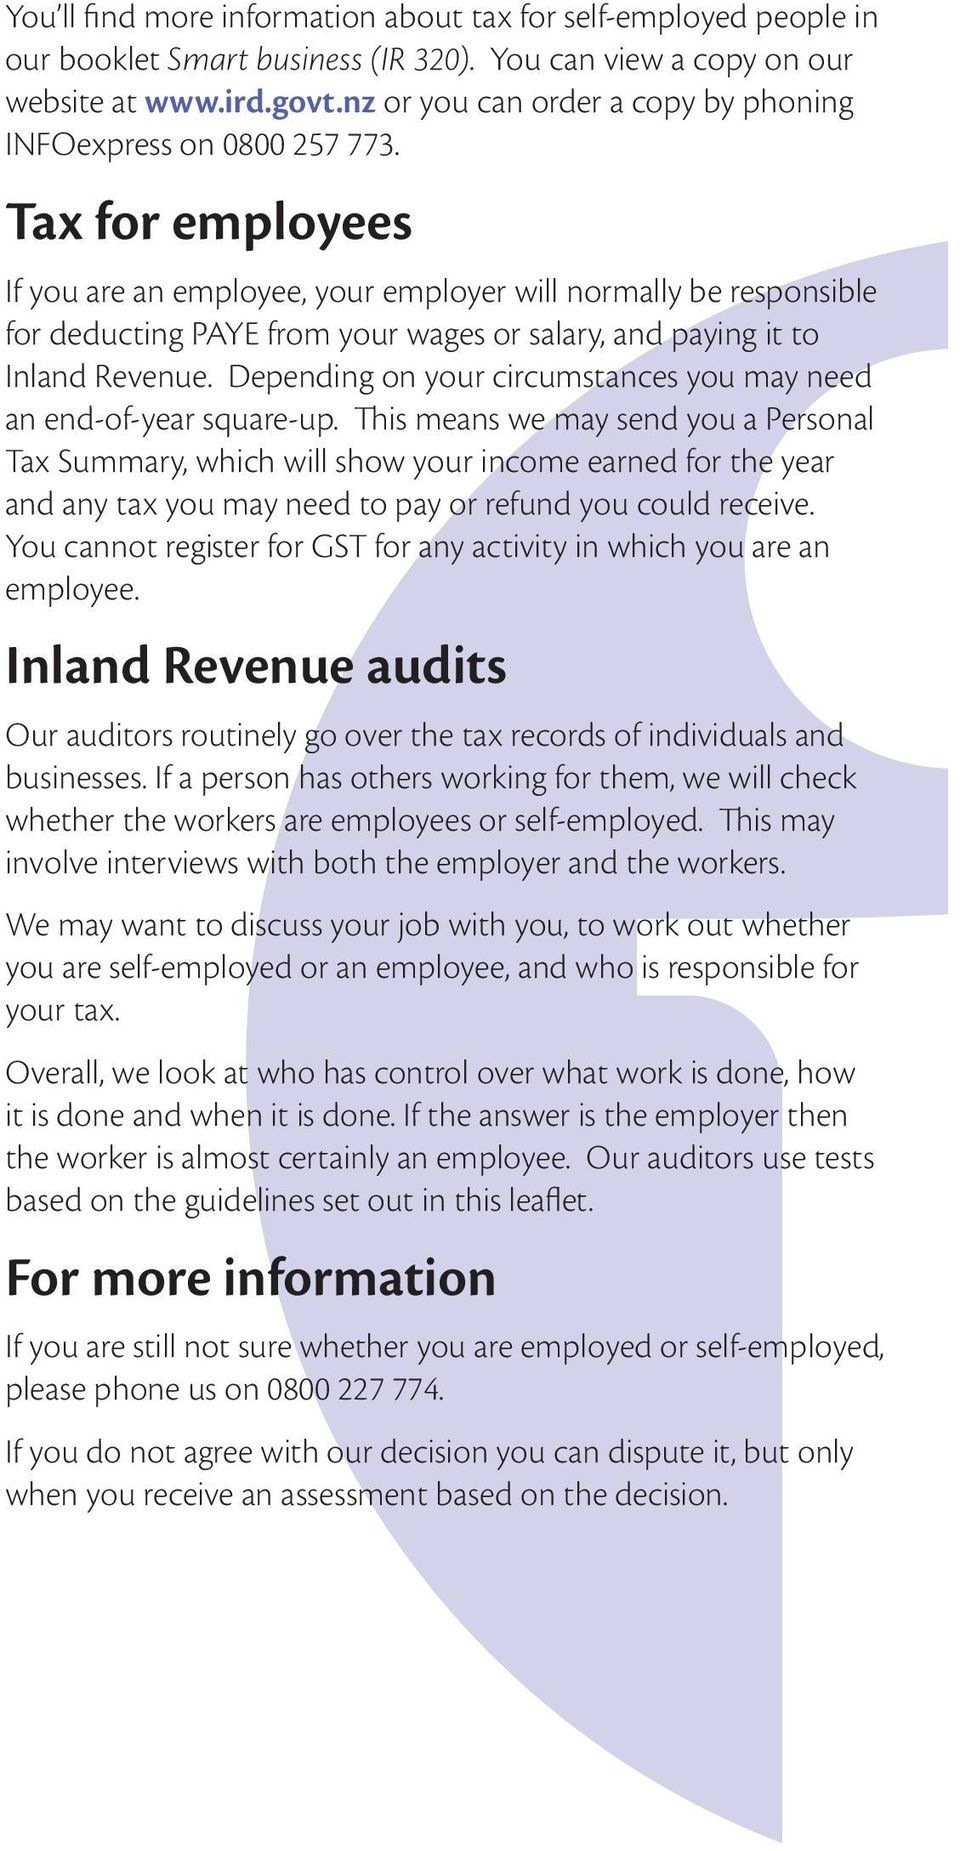 Tax for employees If you are an employee, your employer will normally be responsible for deducting PAYE from your wages or salary, and paying it to Inland Revenue.